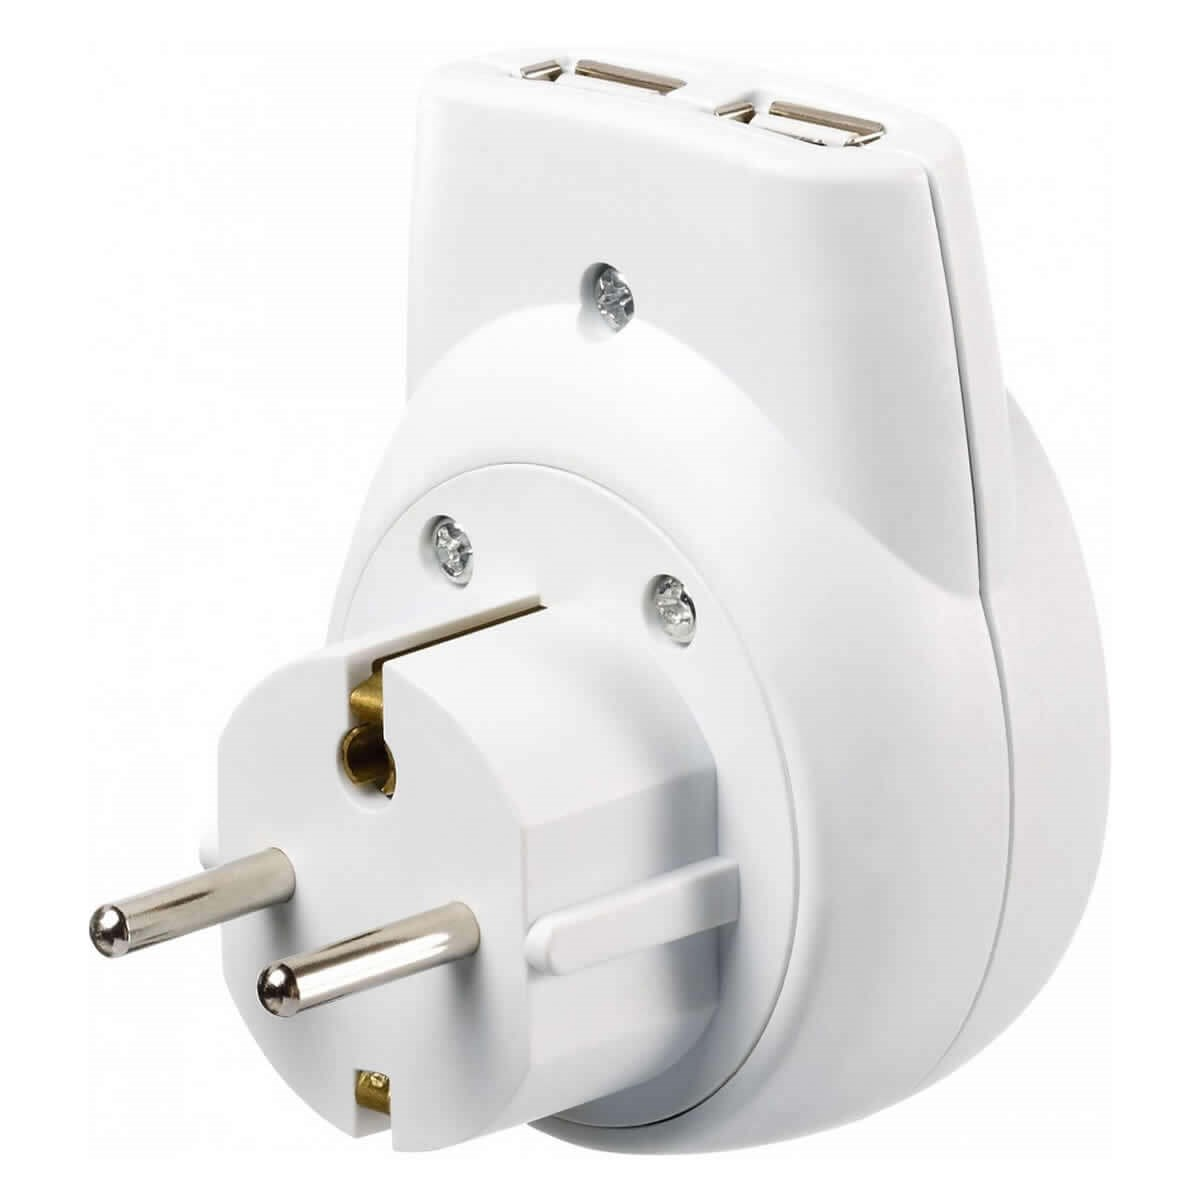 Go Travel Continental USB Adaptor (Visitor - Europe)